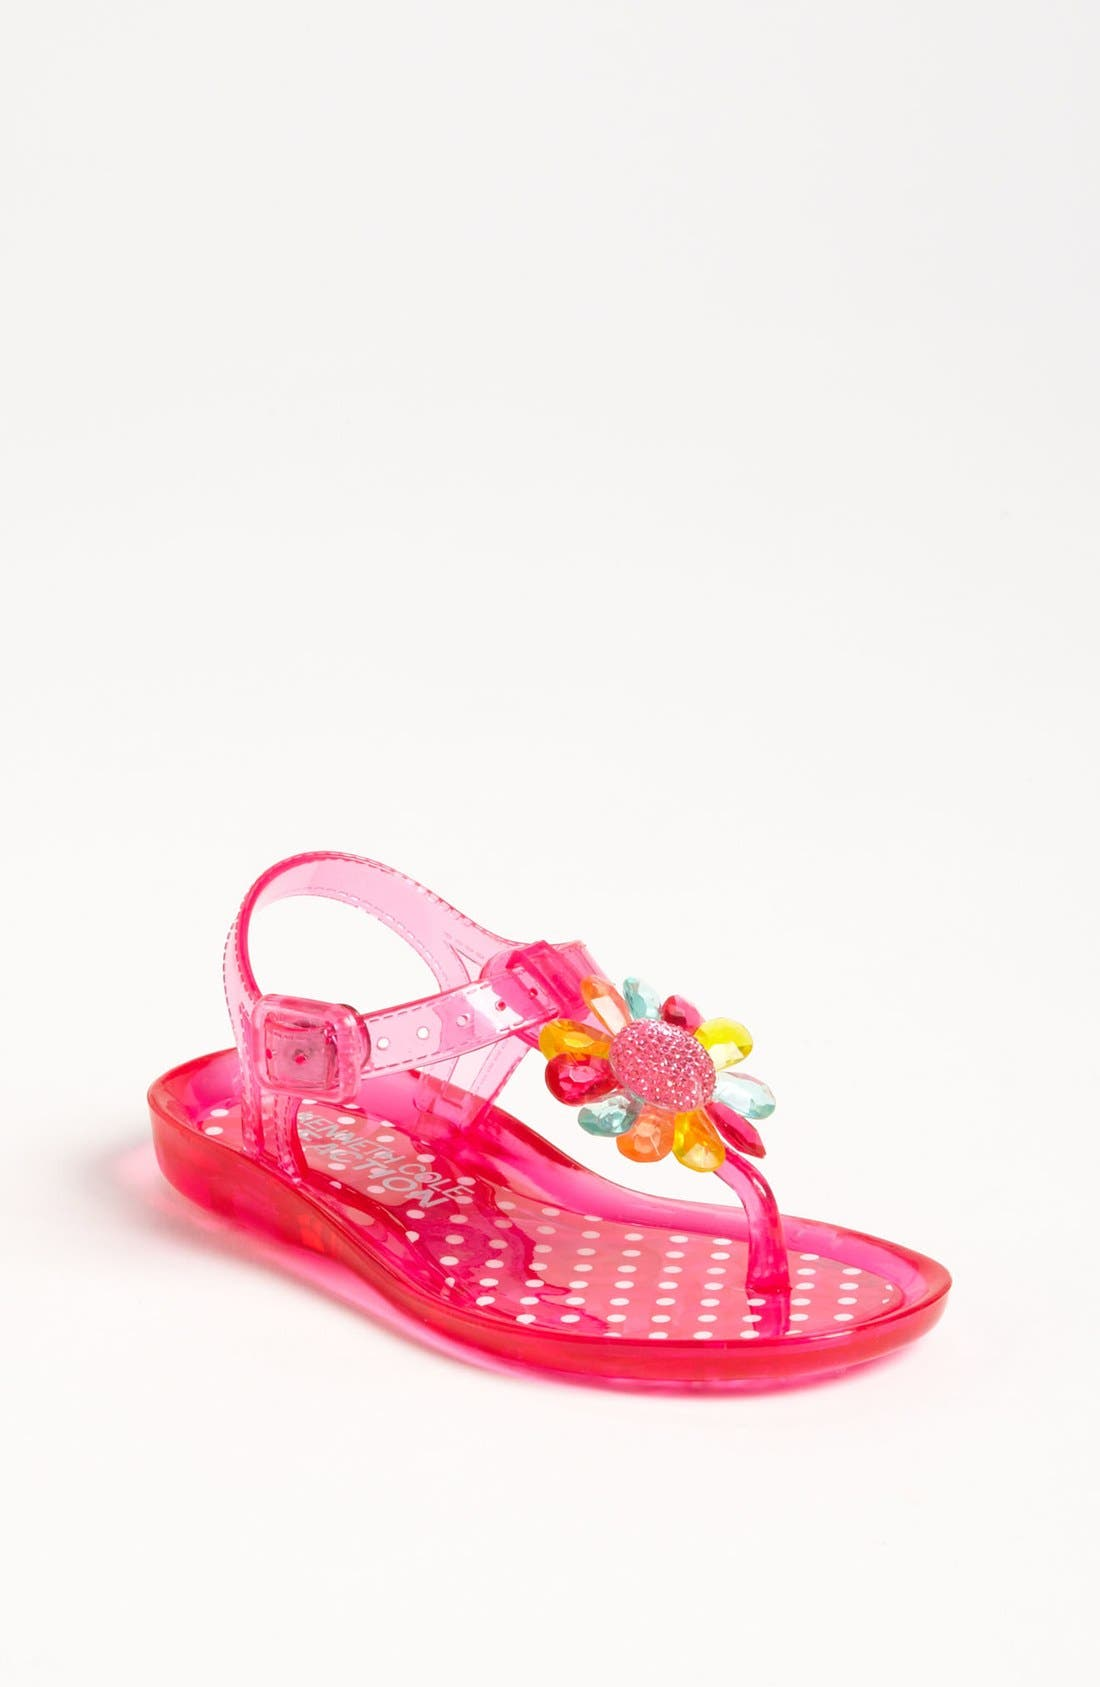 Main Image - Kenneth Cole Reaction 'Call The Jelly' Sandal (Walker, Toddler & Little Kid)